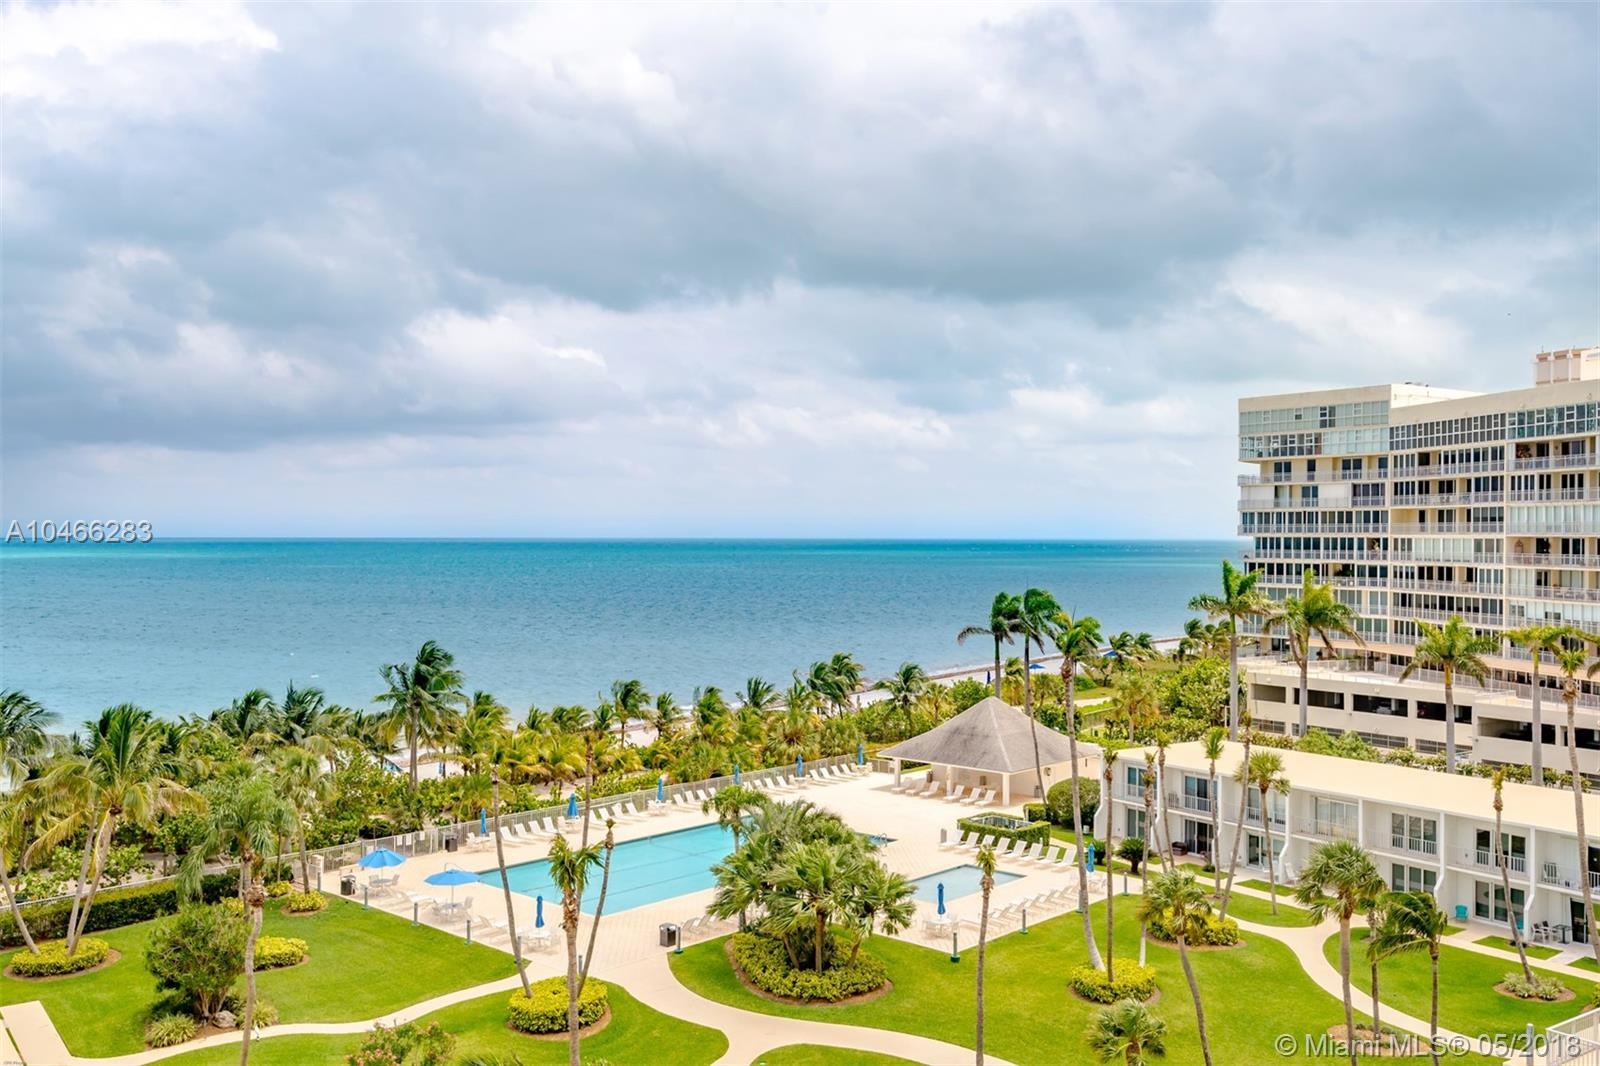 key biscayne muslim Search the best holiday homes & rentals destination: check-in check-out.